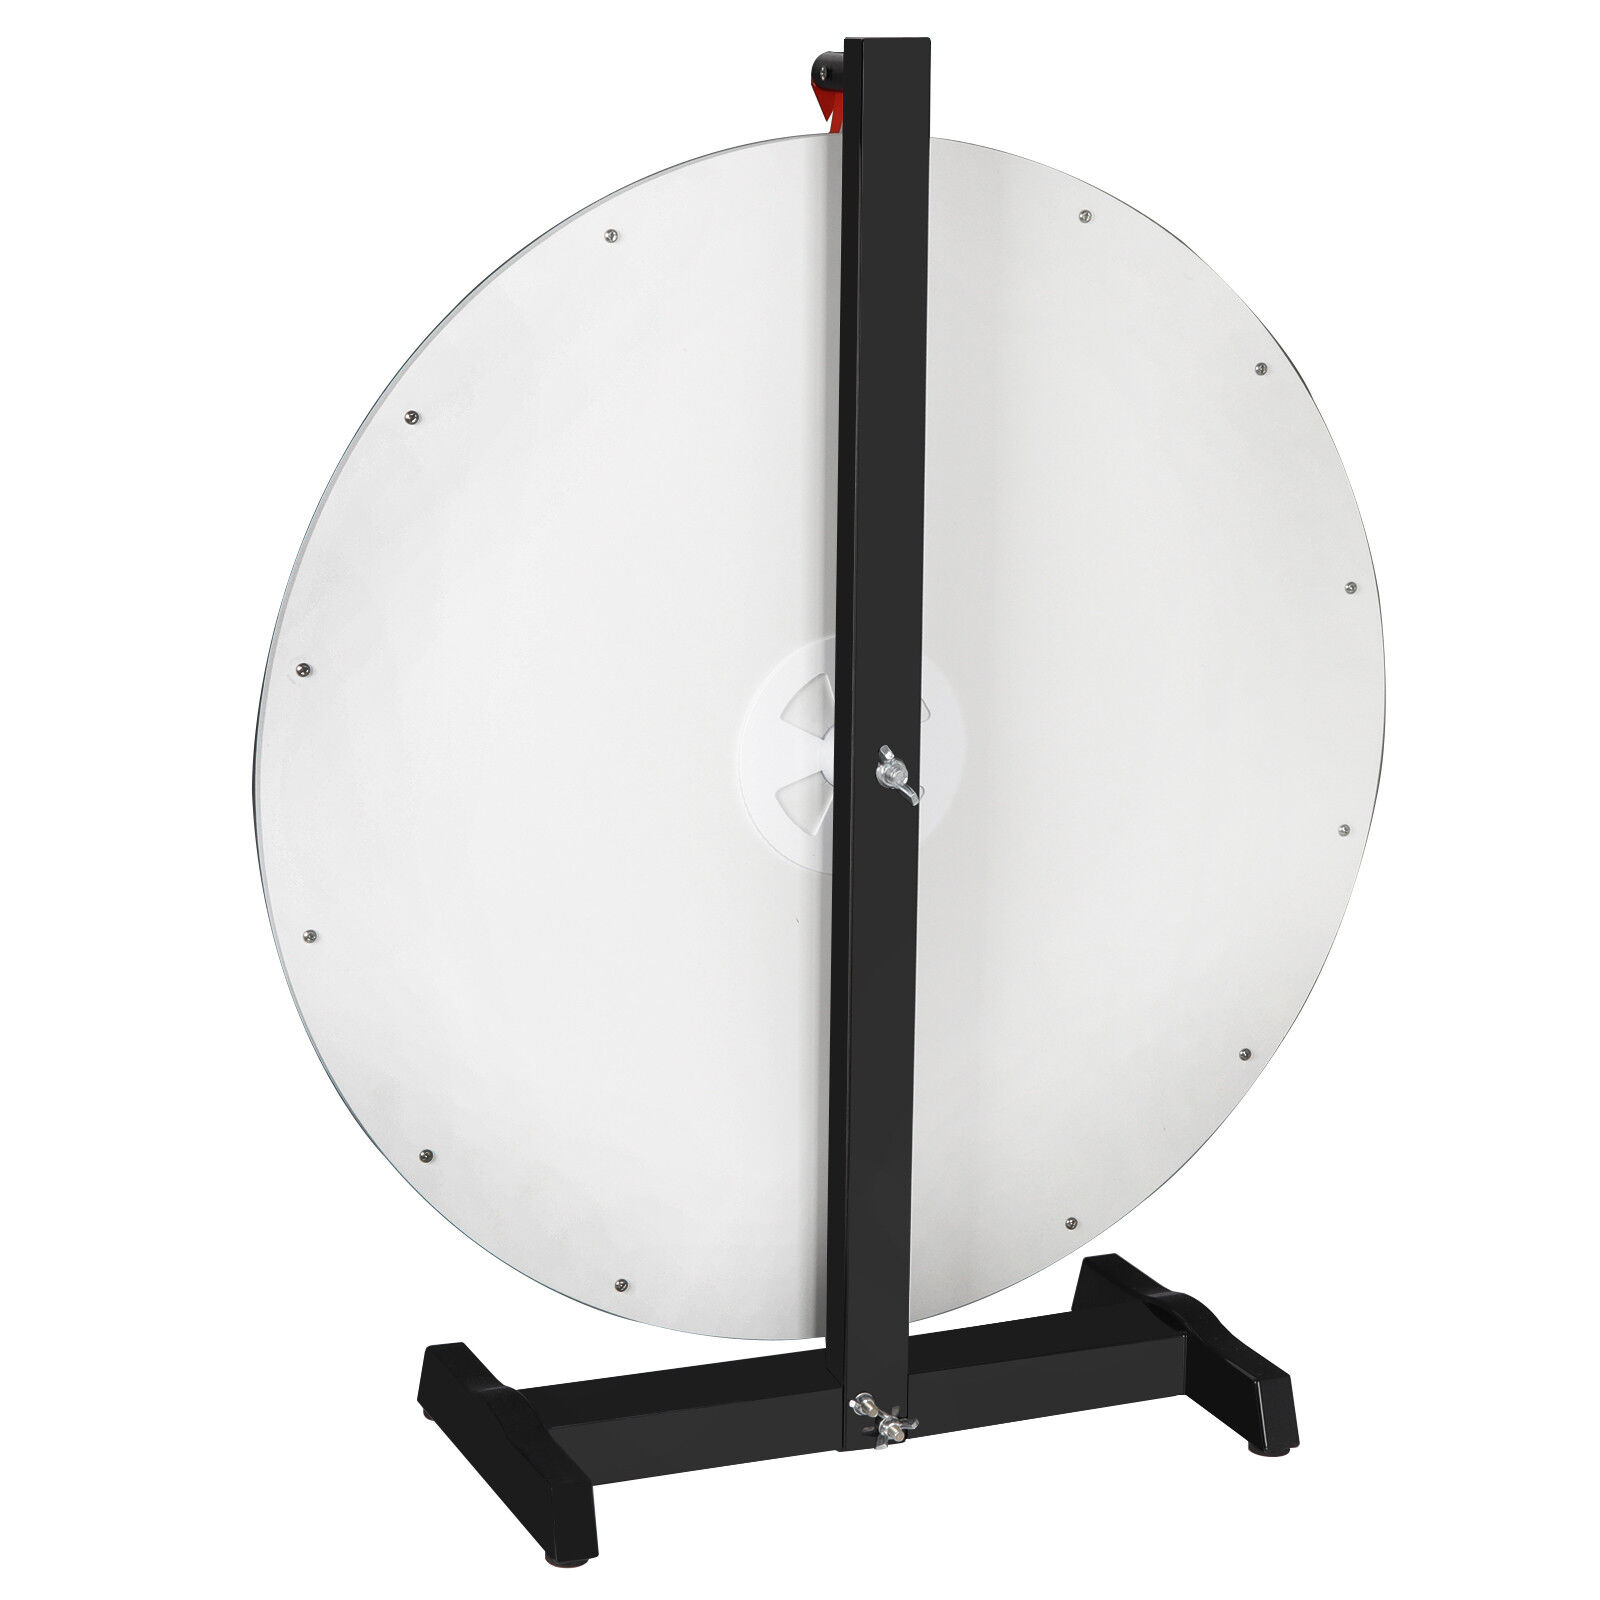 24″ Prize Wheel Customizable Color Erasable Board W/Sturdy Stand Tradeshows Game Business & Industrial